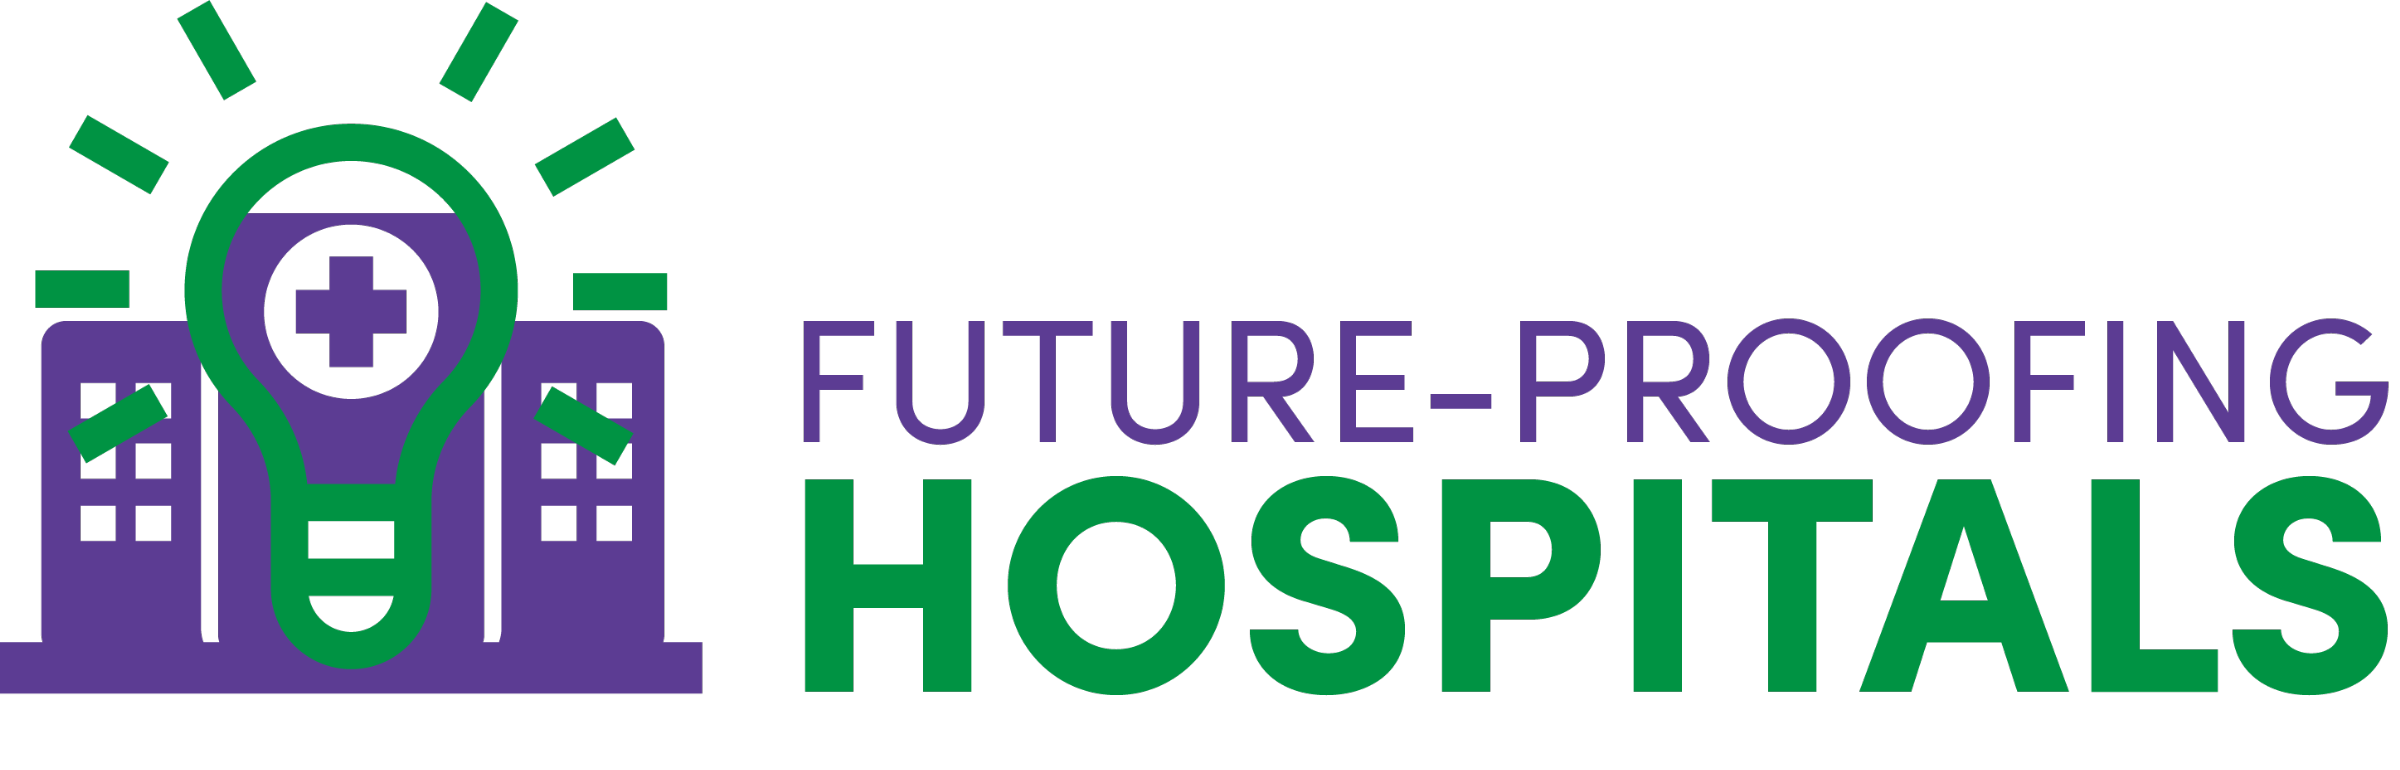 Future-Proofing Hospitals